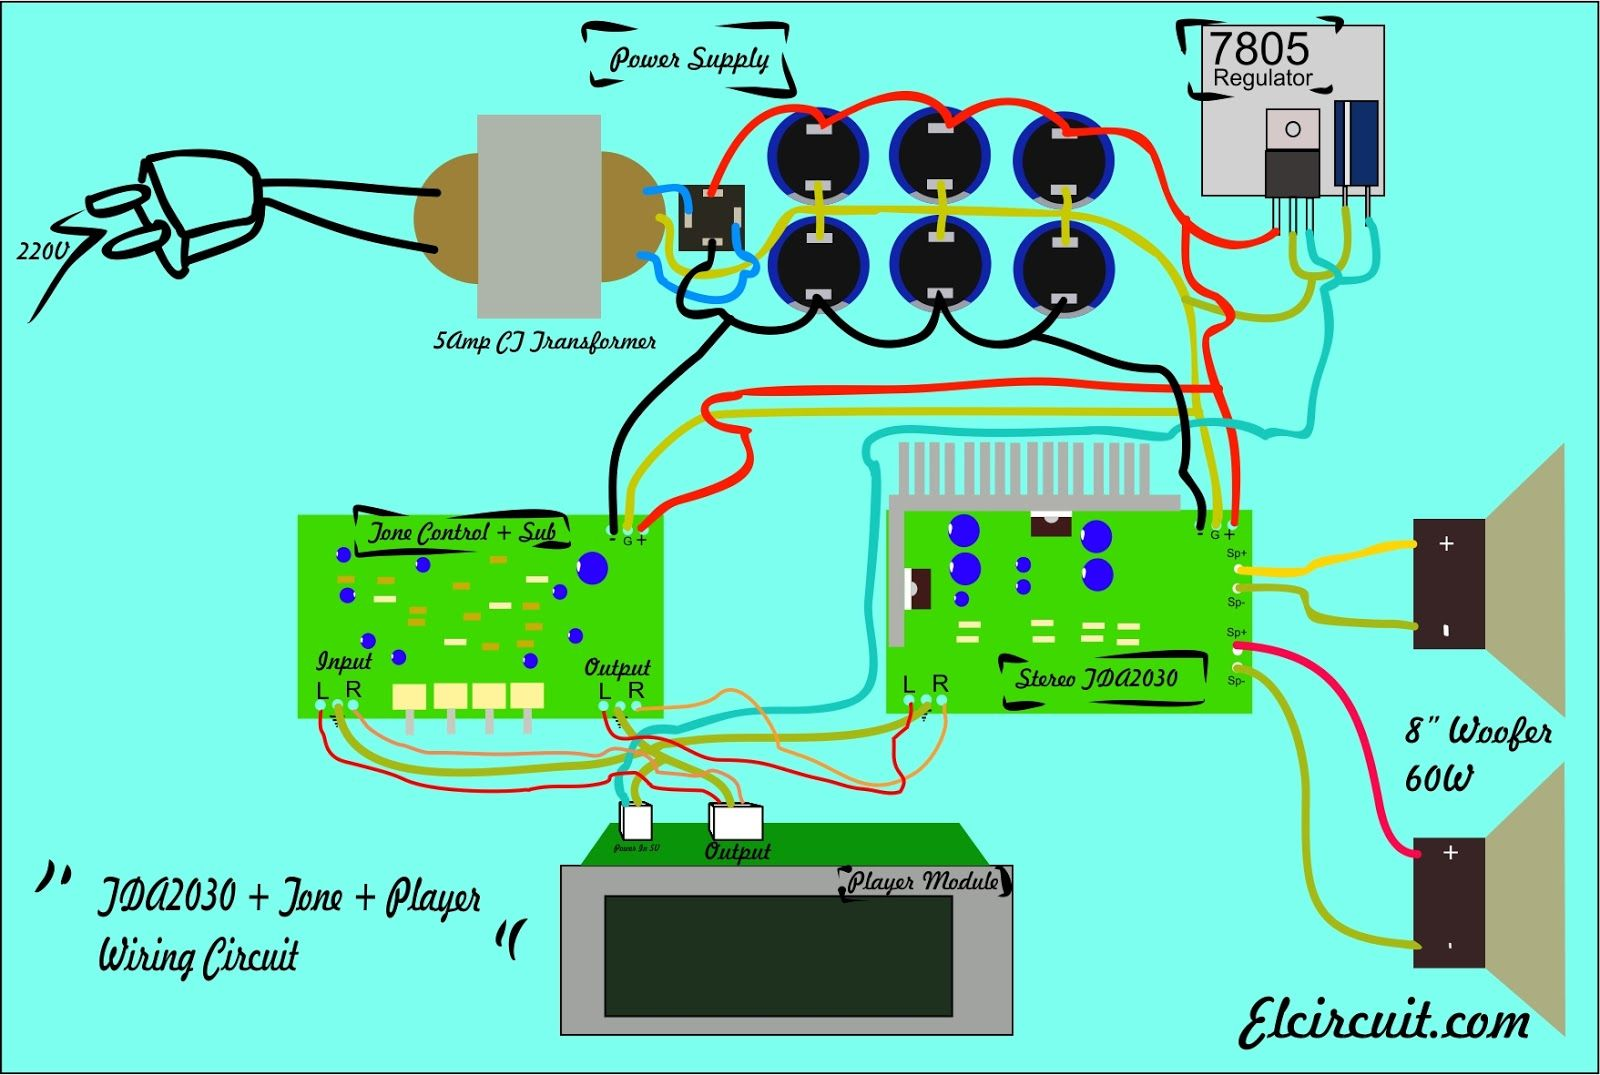 hight resolution of wiring circuit diagram tda2030 tone control subwoofer mp3 player